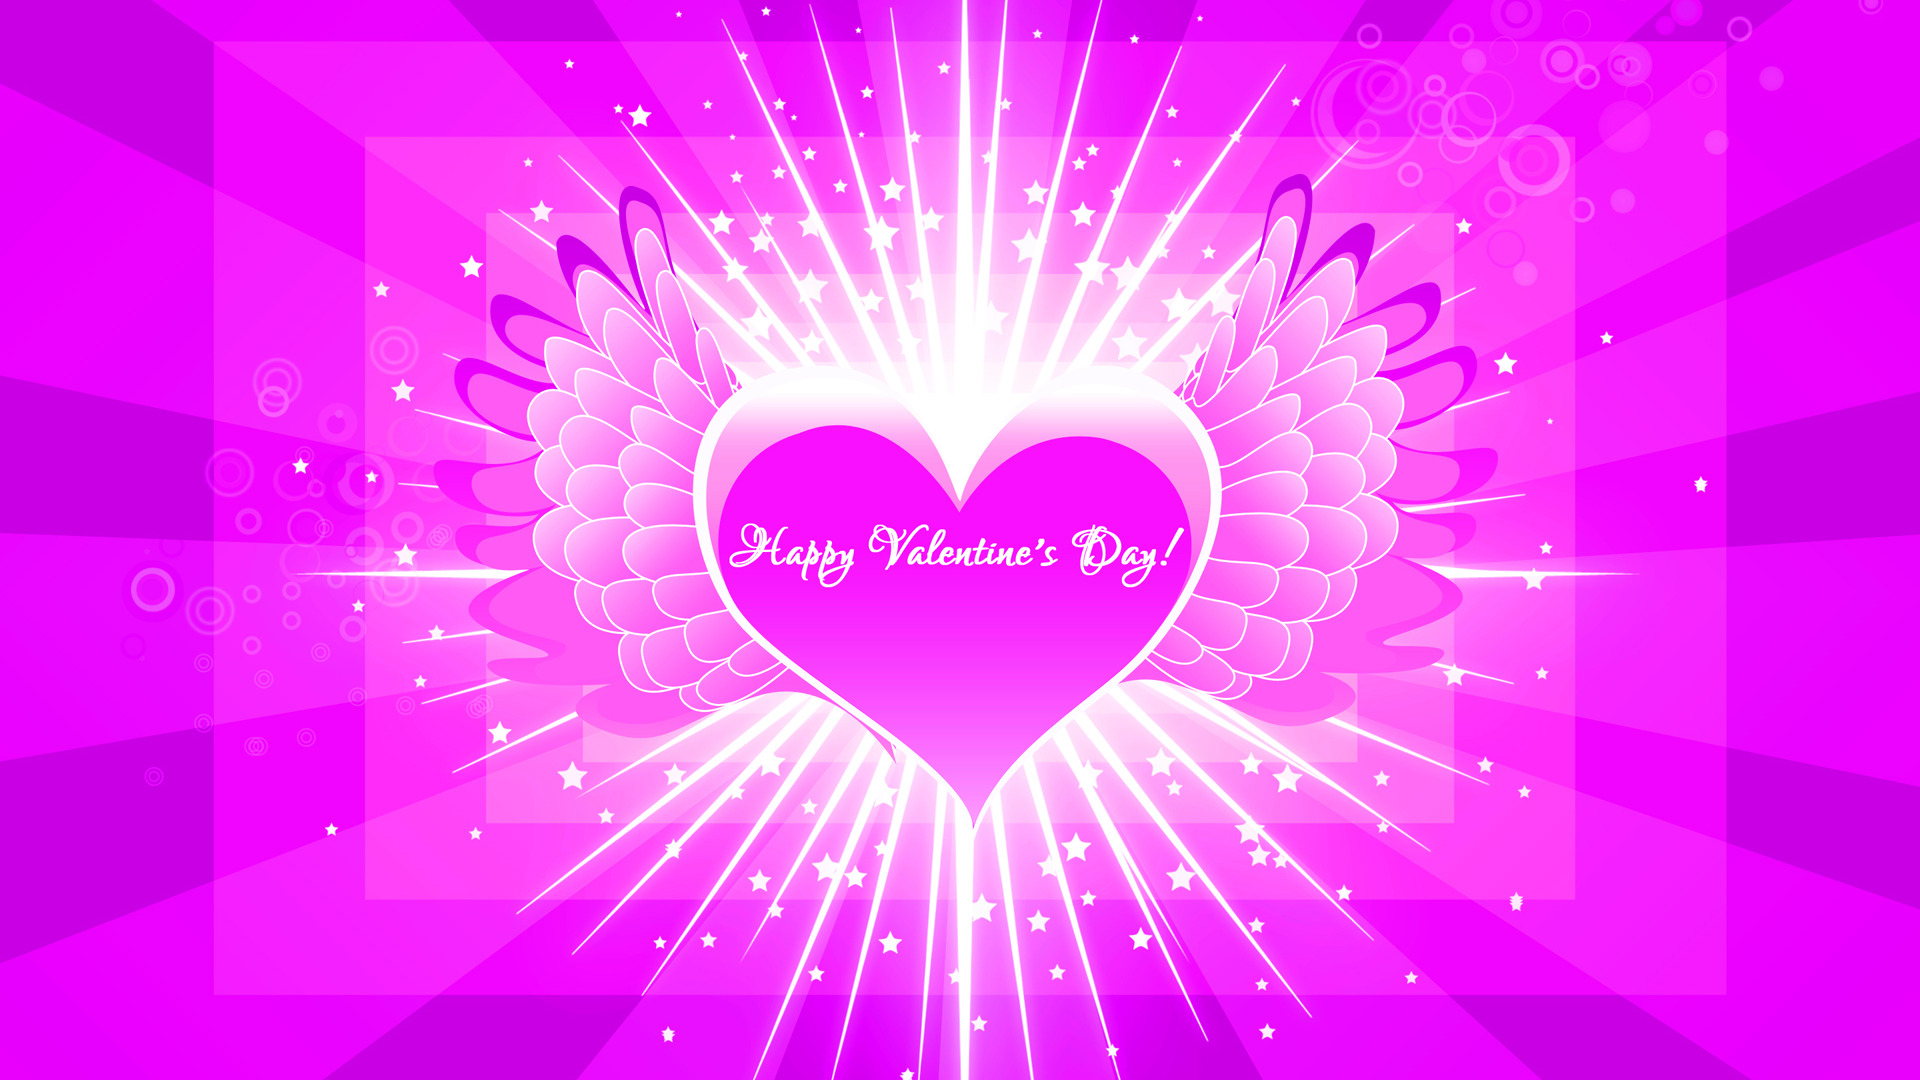 best hd valentine's day images for mobile | pc | desktop | laptop